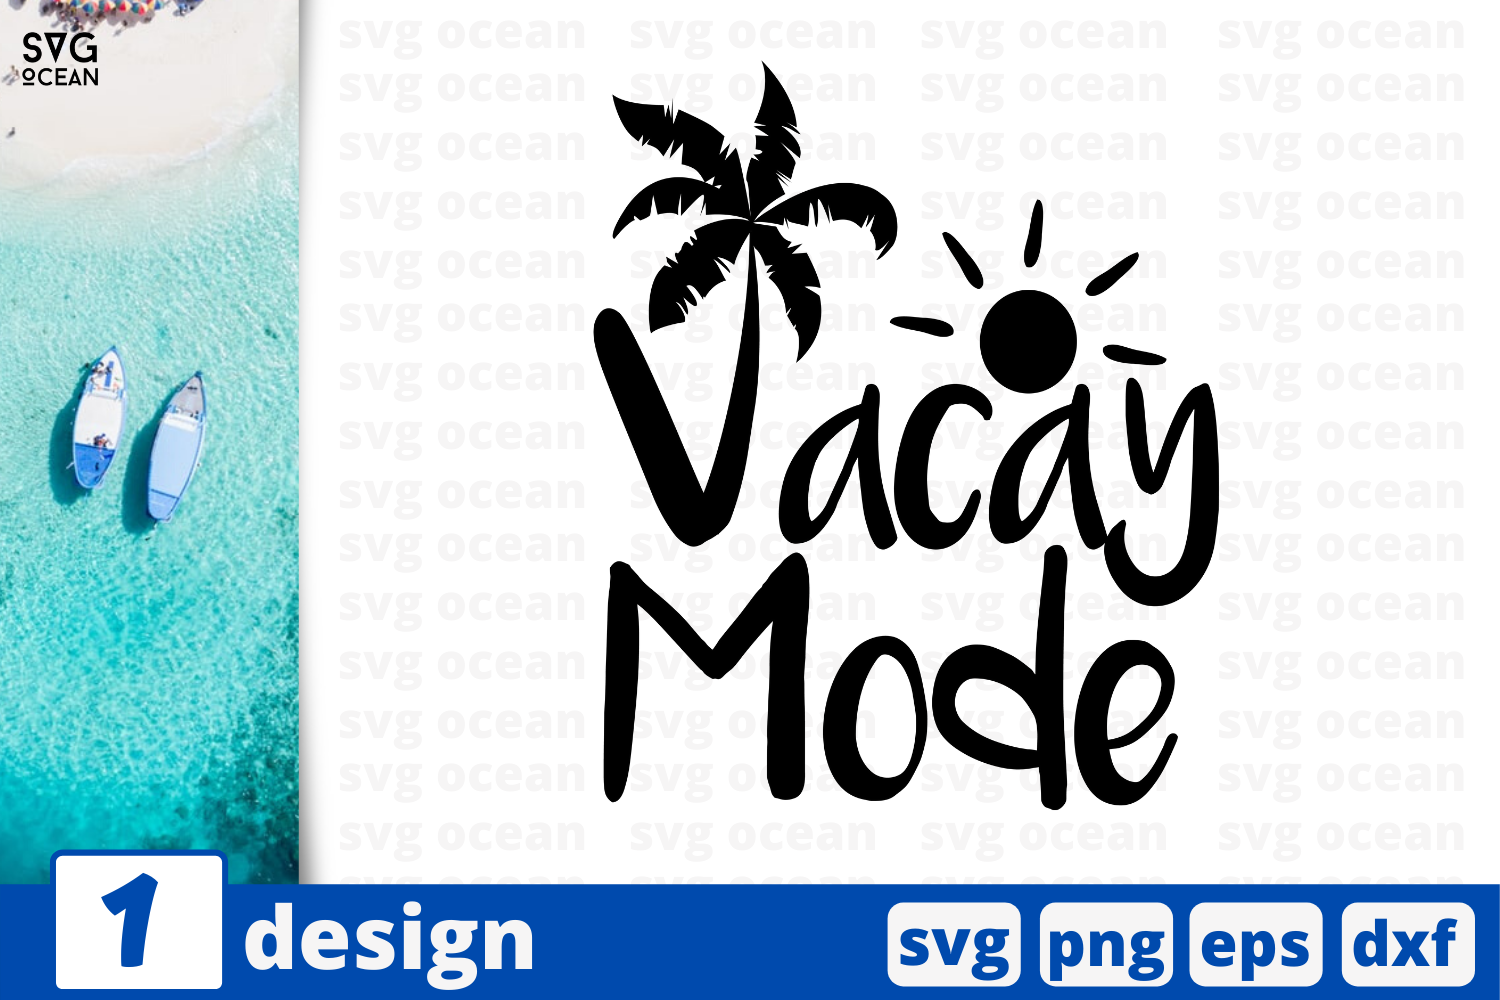 Download Free 1 Vacay Made Svg Bundle Summer Cricut Graphic By Svgocean Creative Fabrica for Cricut Explore, Silhouette and other cutting machines.